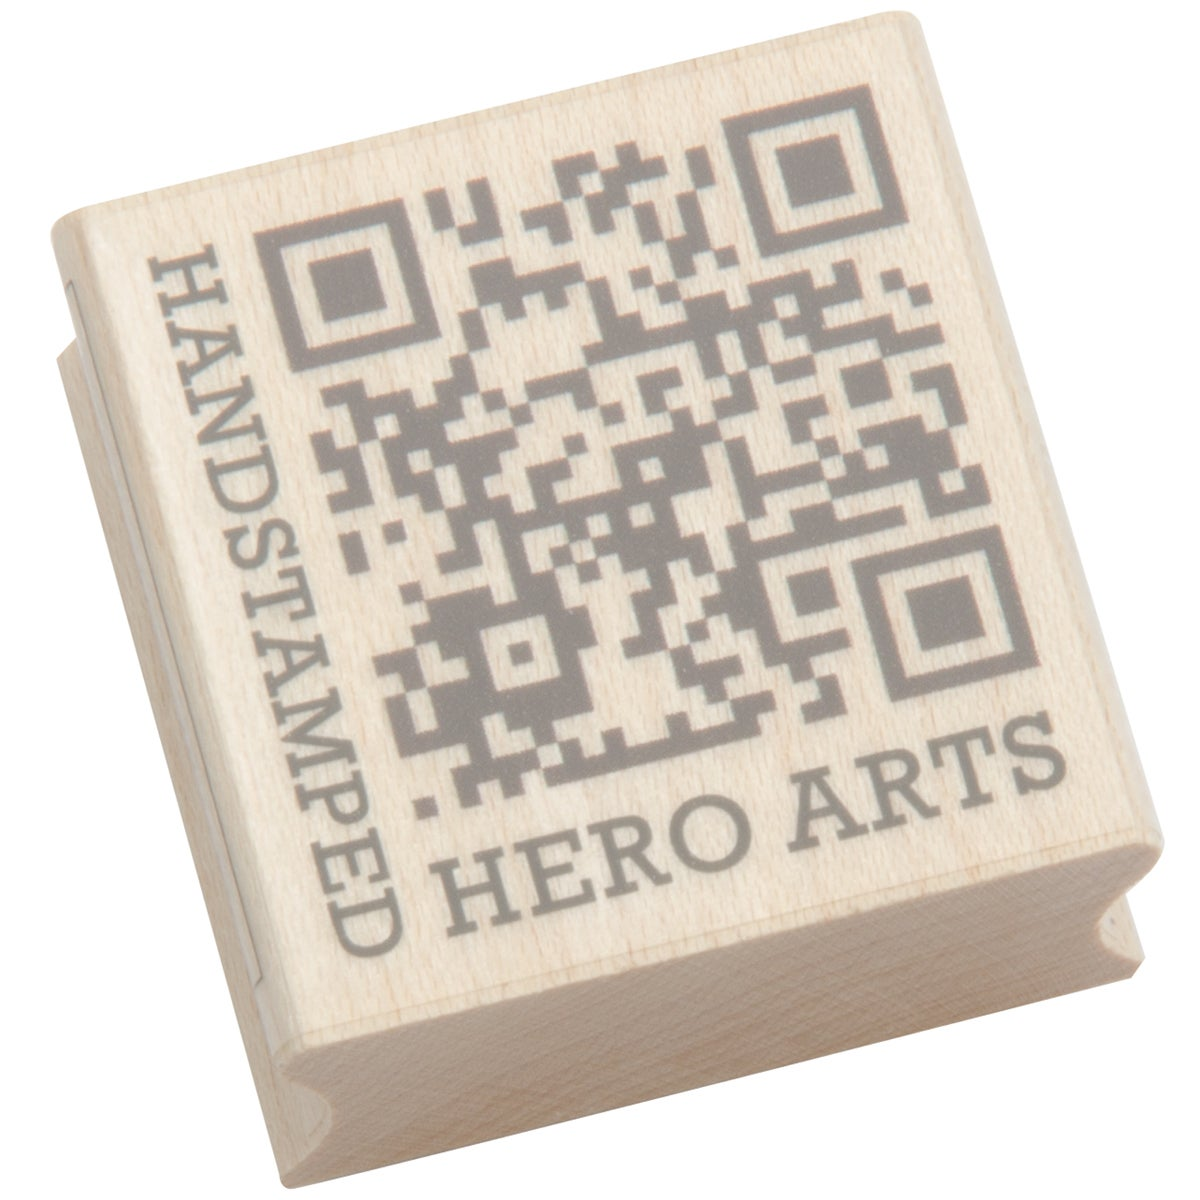 Hero Arts Handstamped Mounted Rubber Stamp